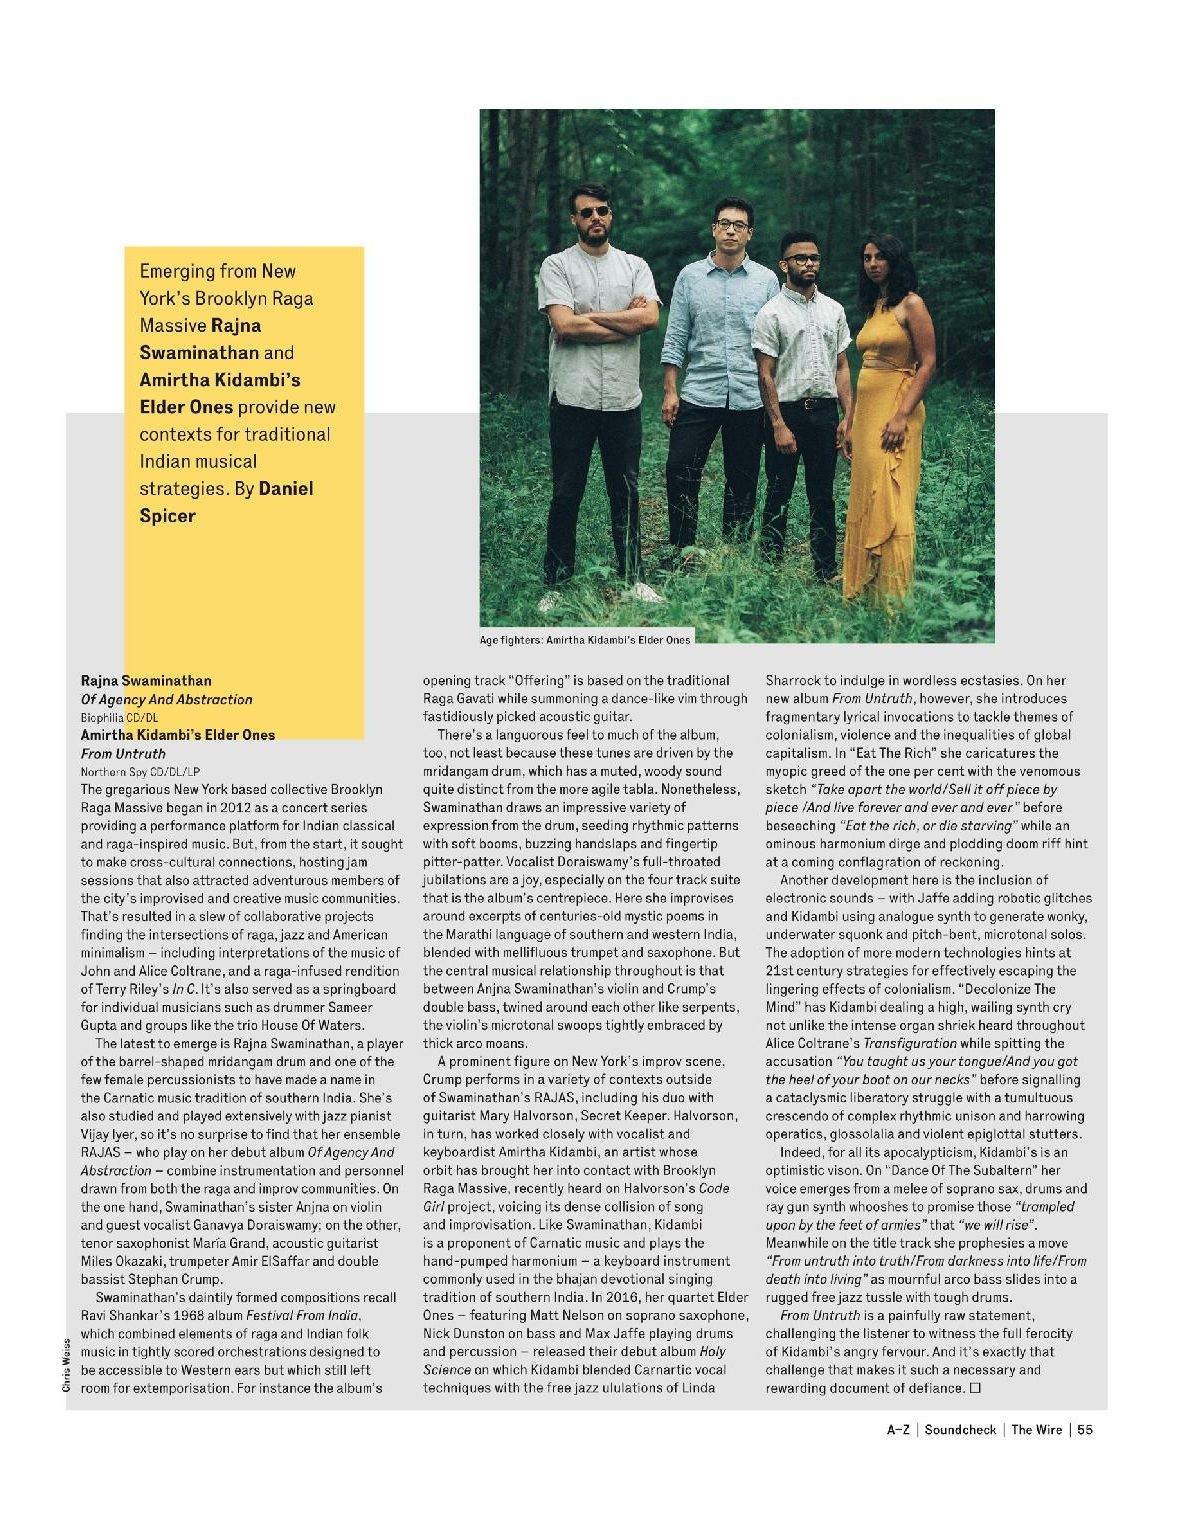 Elder Ones  From Untruth  Review in Wire Magazine, April 2019